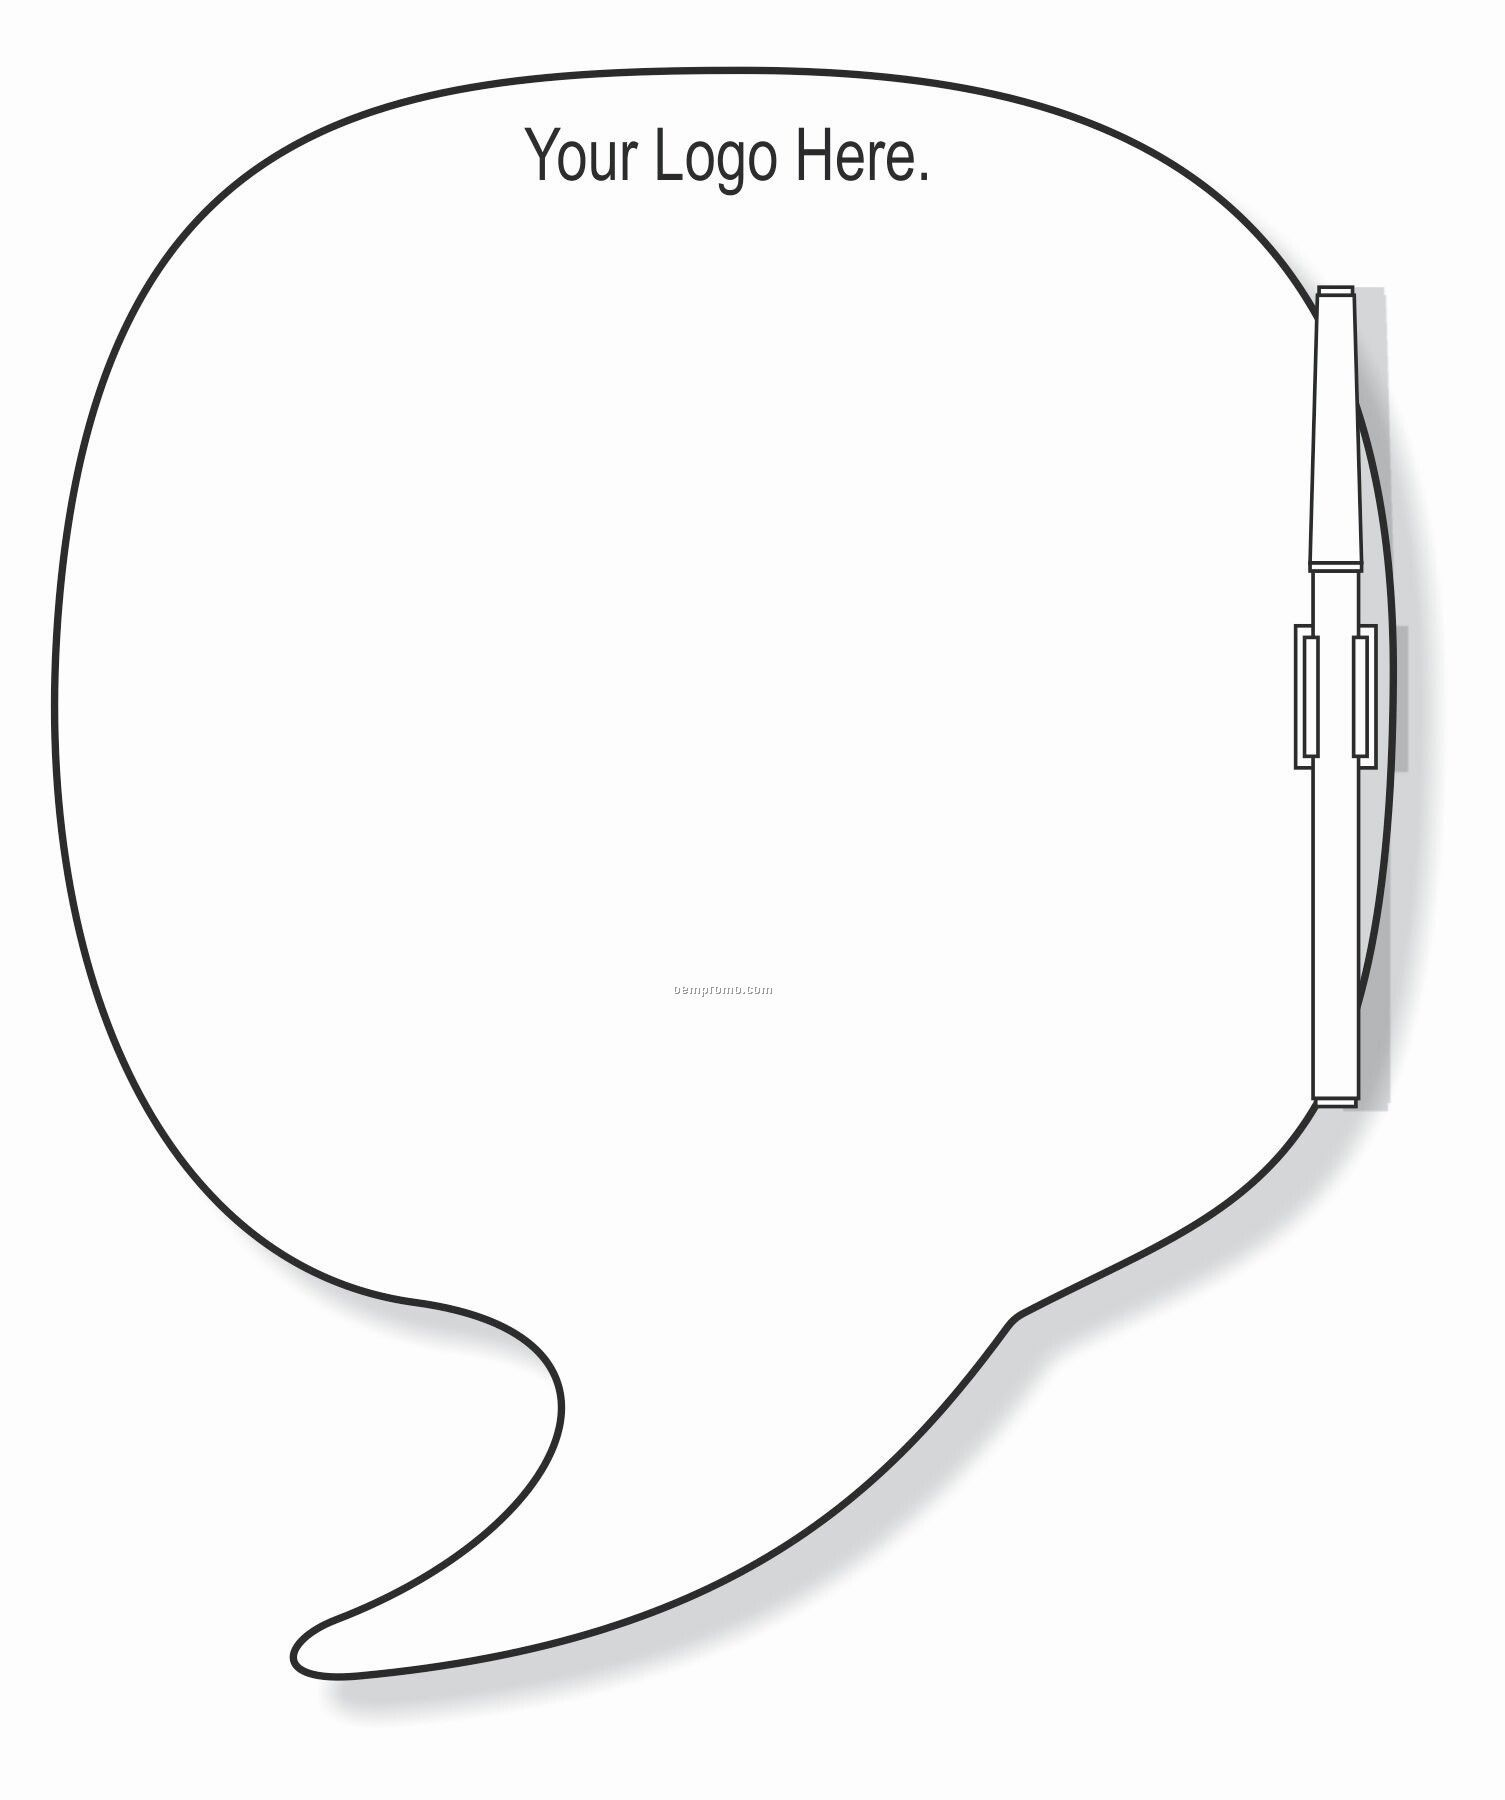 Standard Round Speech Bubble White Board